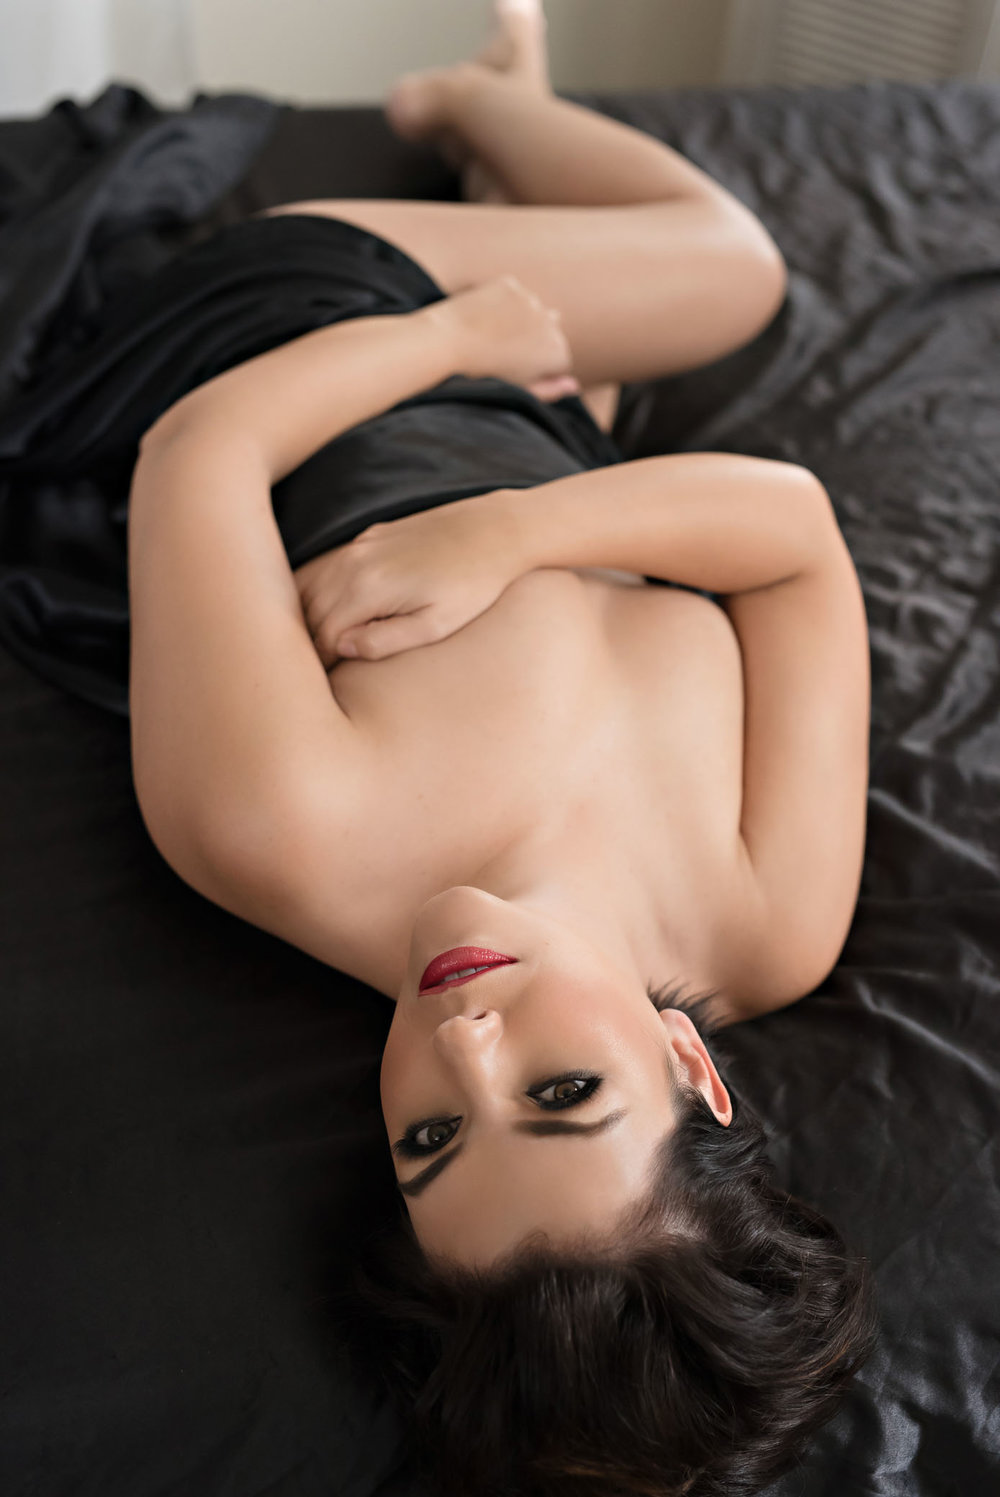 Sexy boudoir photo shoot in black sheets